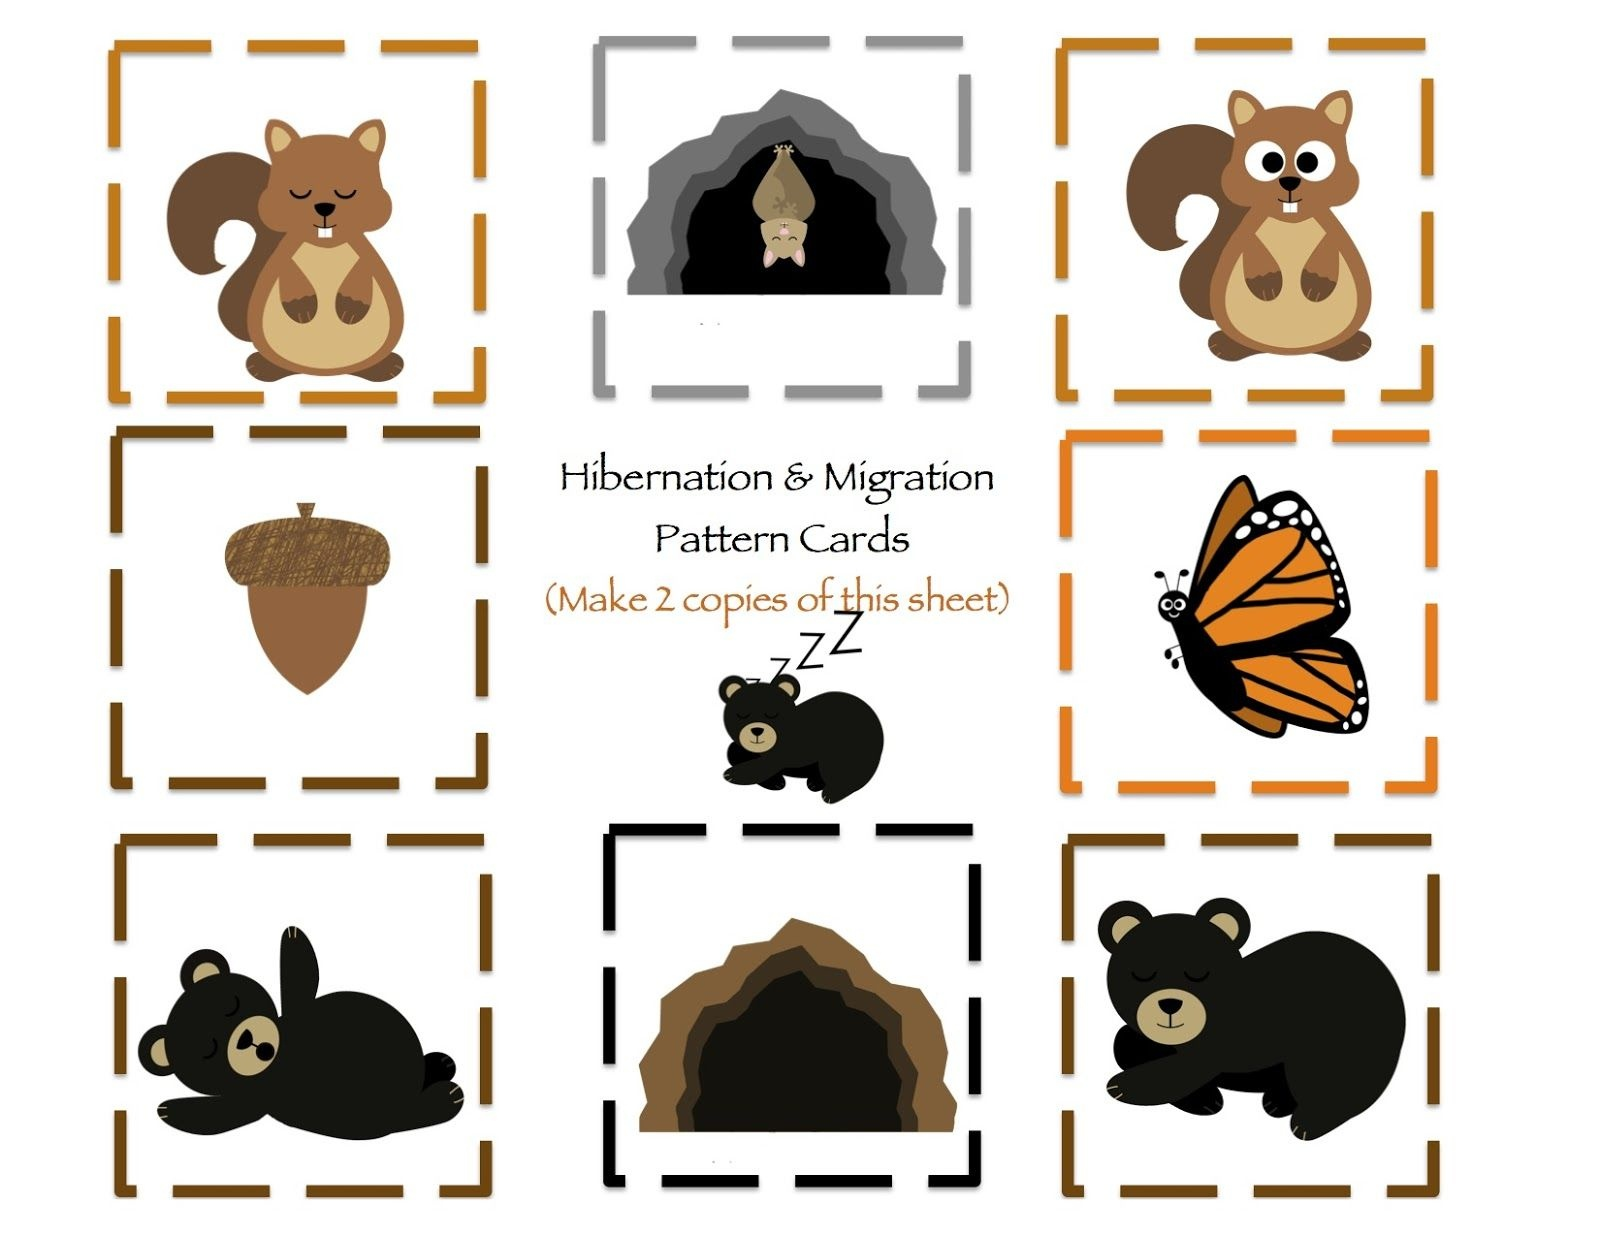 Hibernation & Migration Printable | Preschool | Preschool Printables - Free Printable Hibernation Worksheets